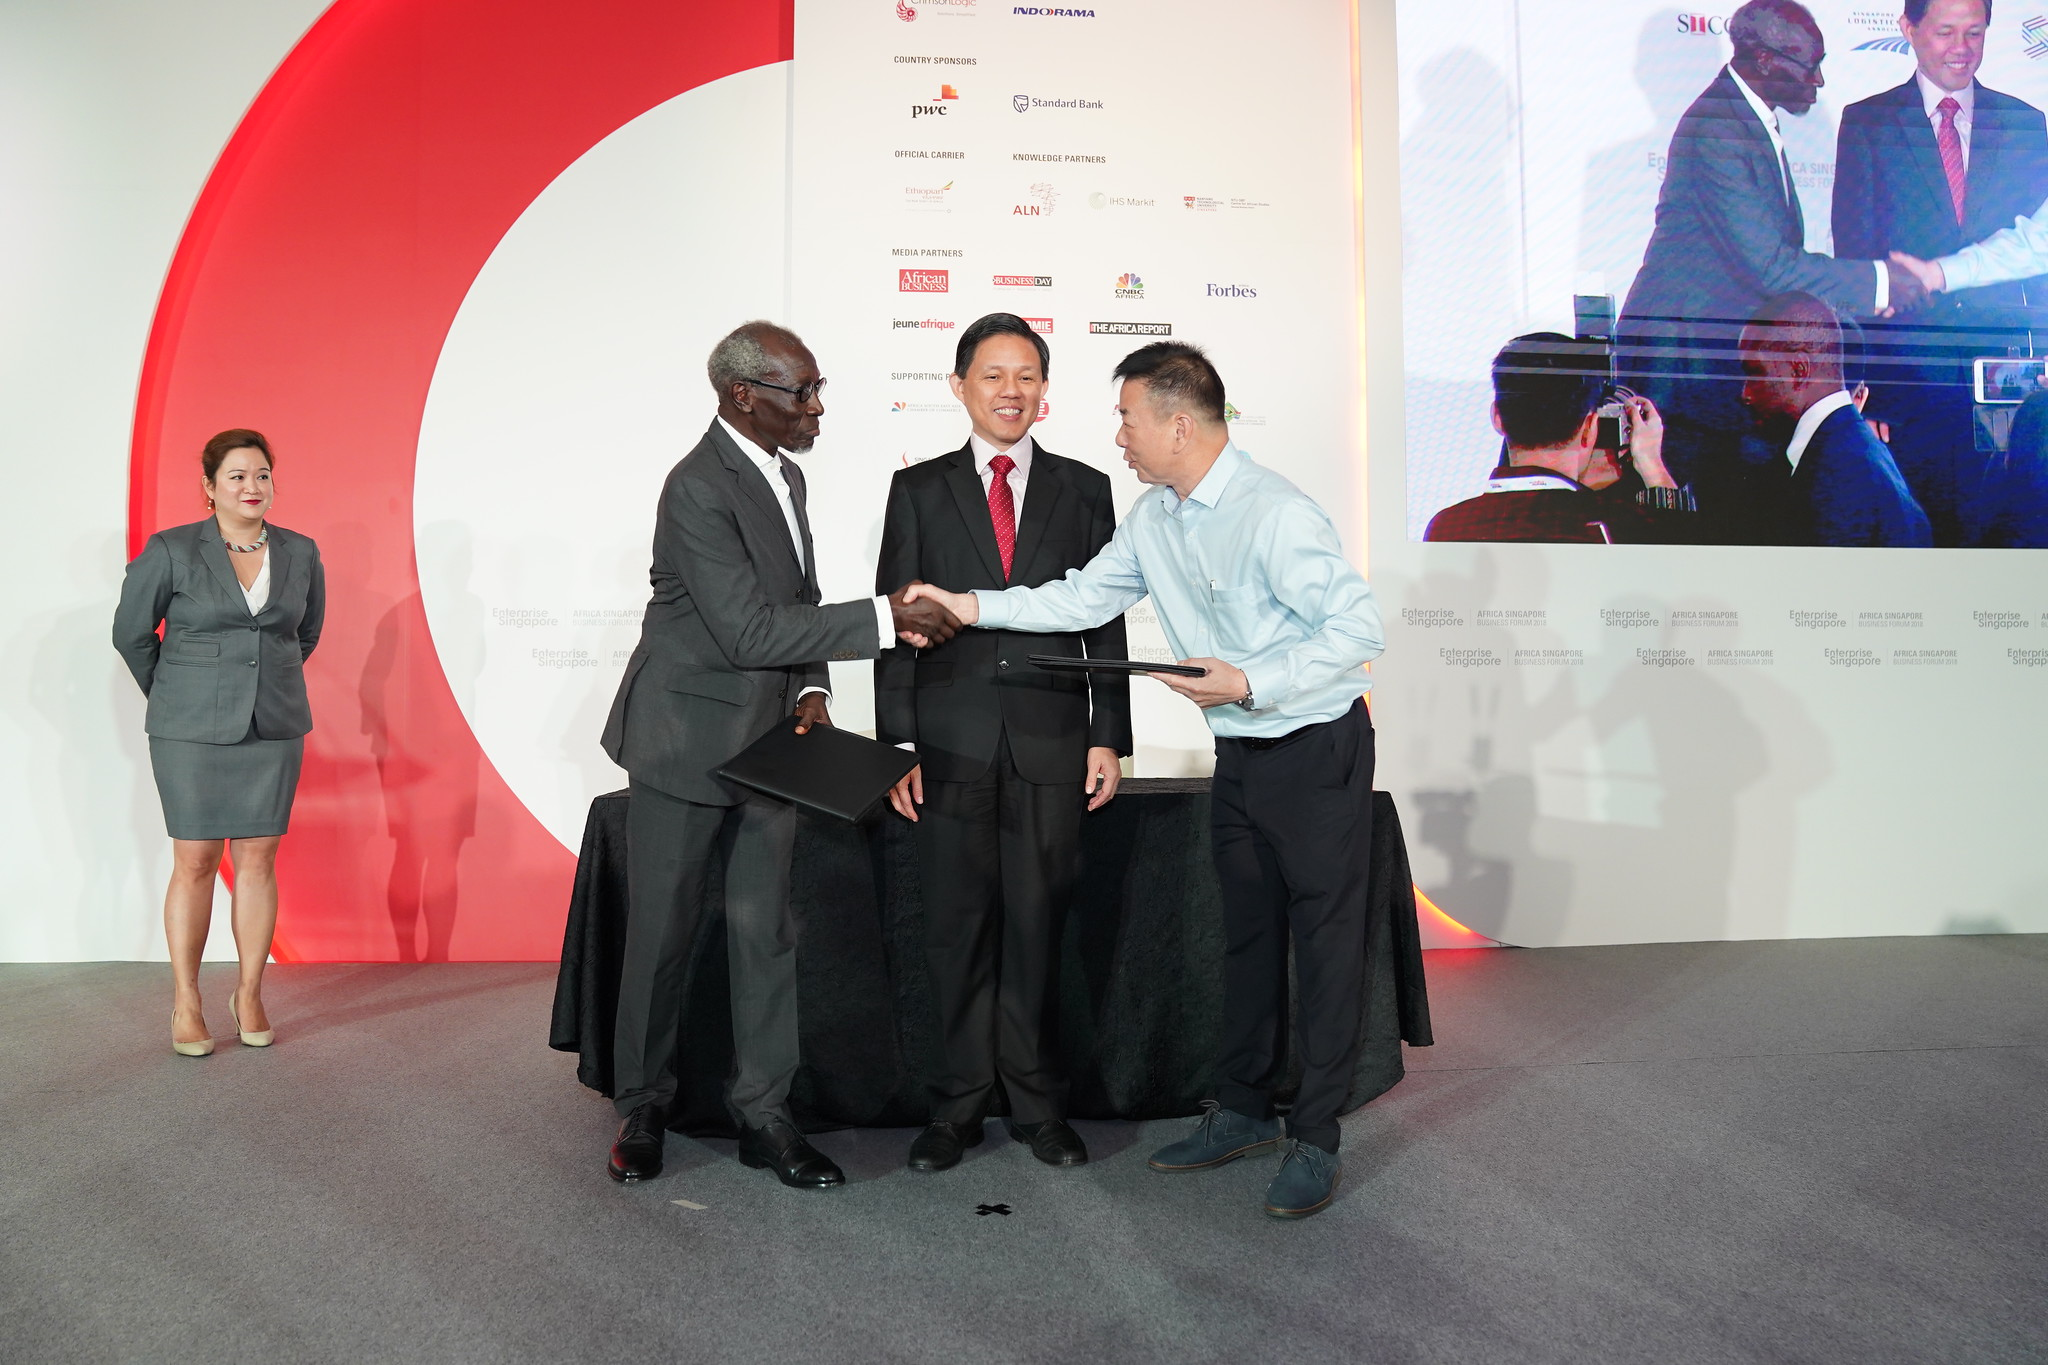 Singapore Identifies New Growth Opportunities in Africa's Digital Economy & Manufacturing Sector